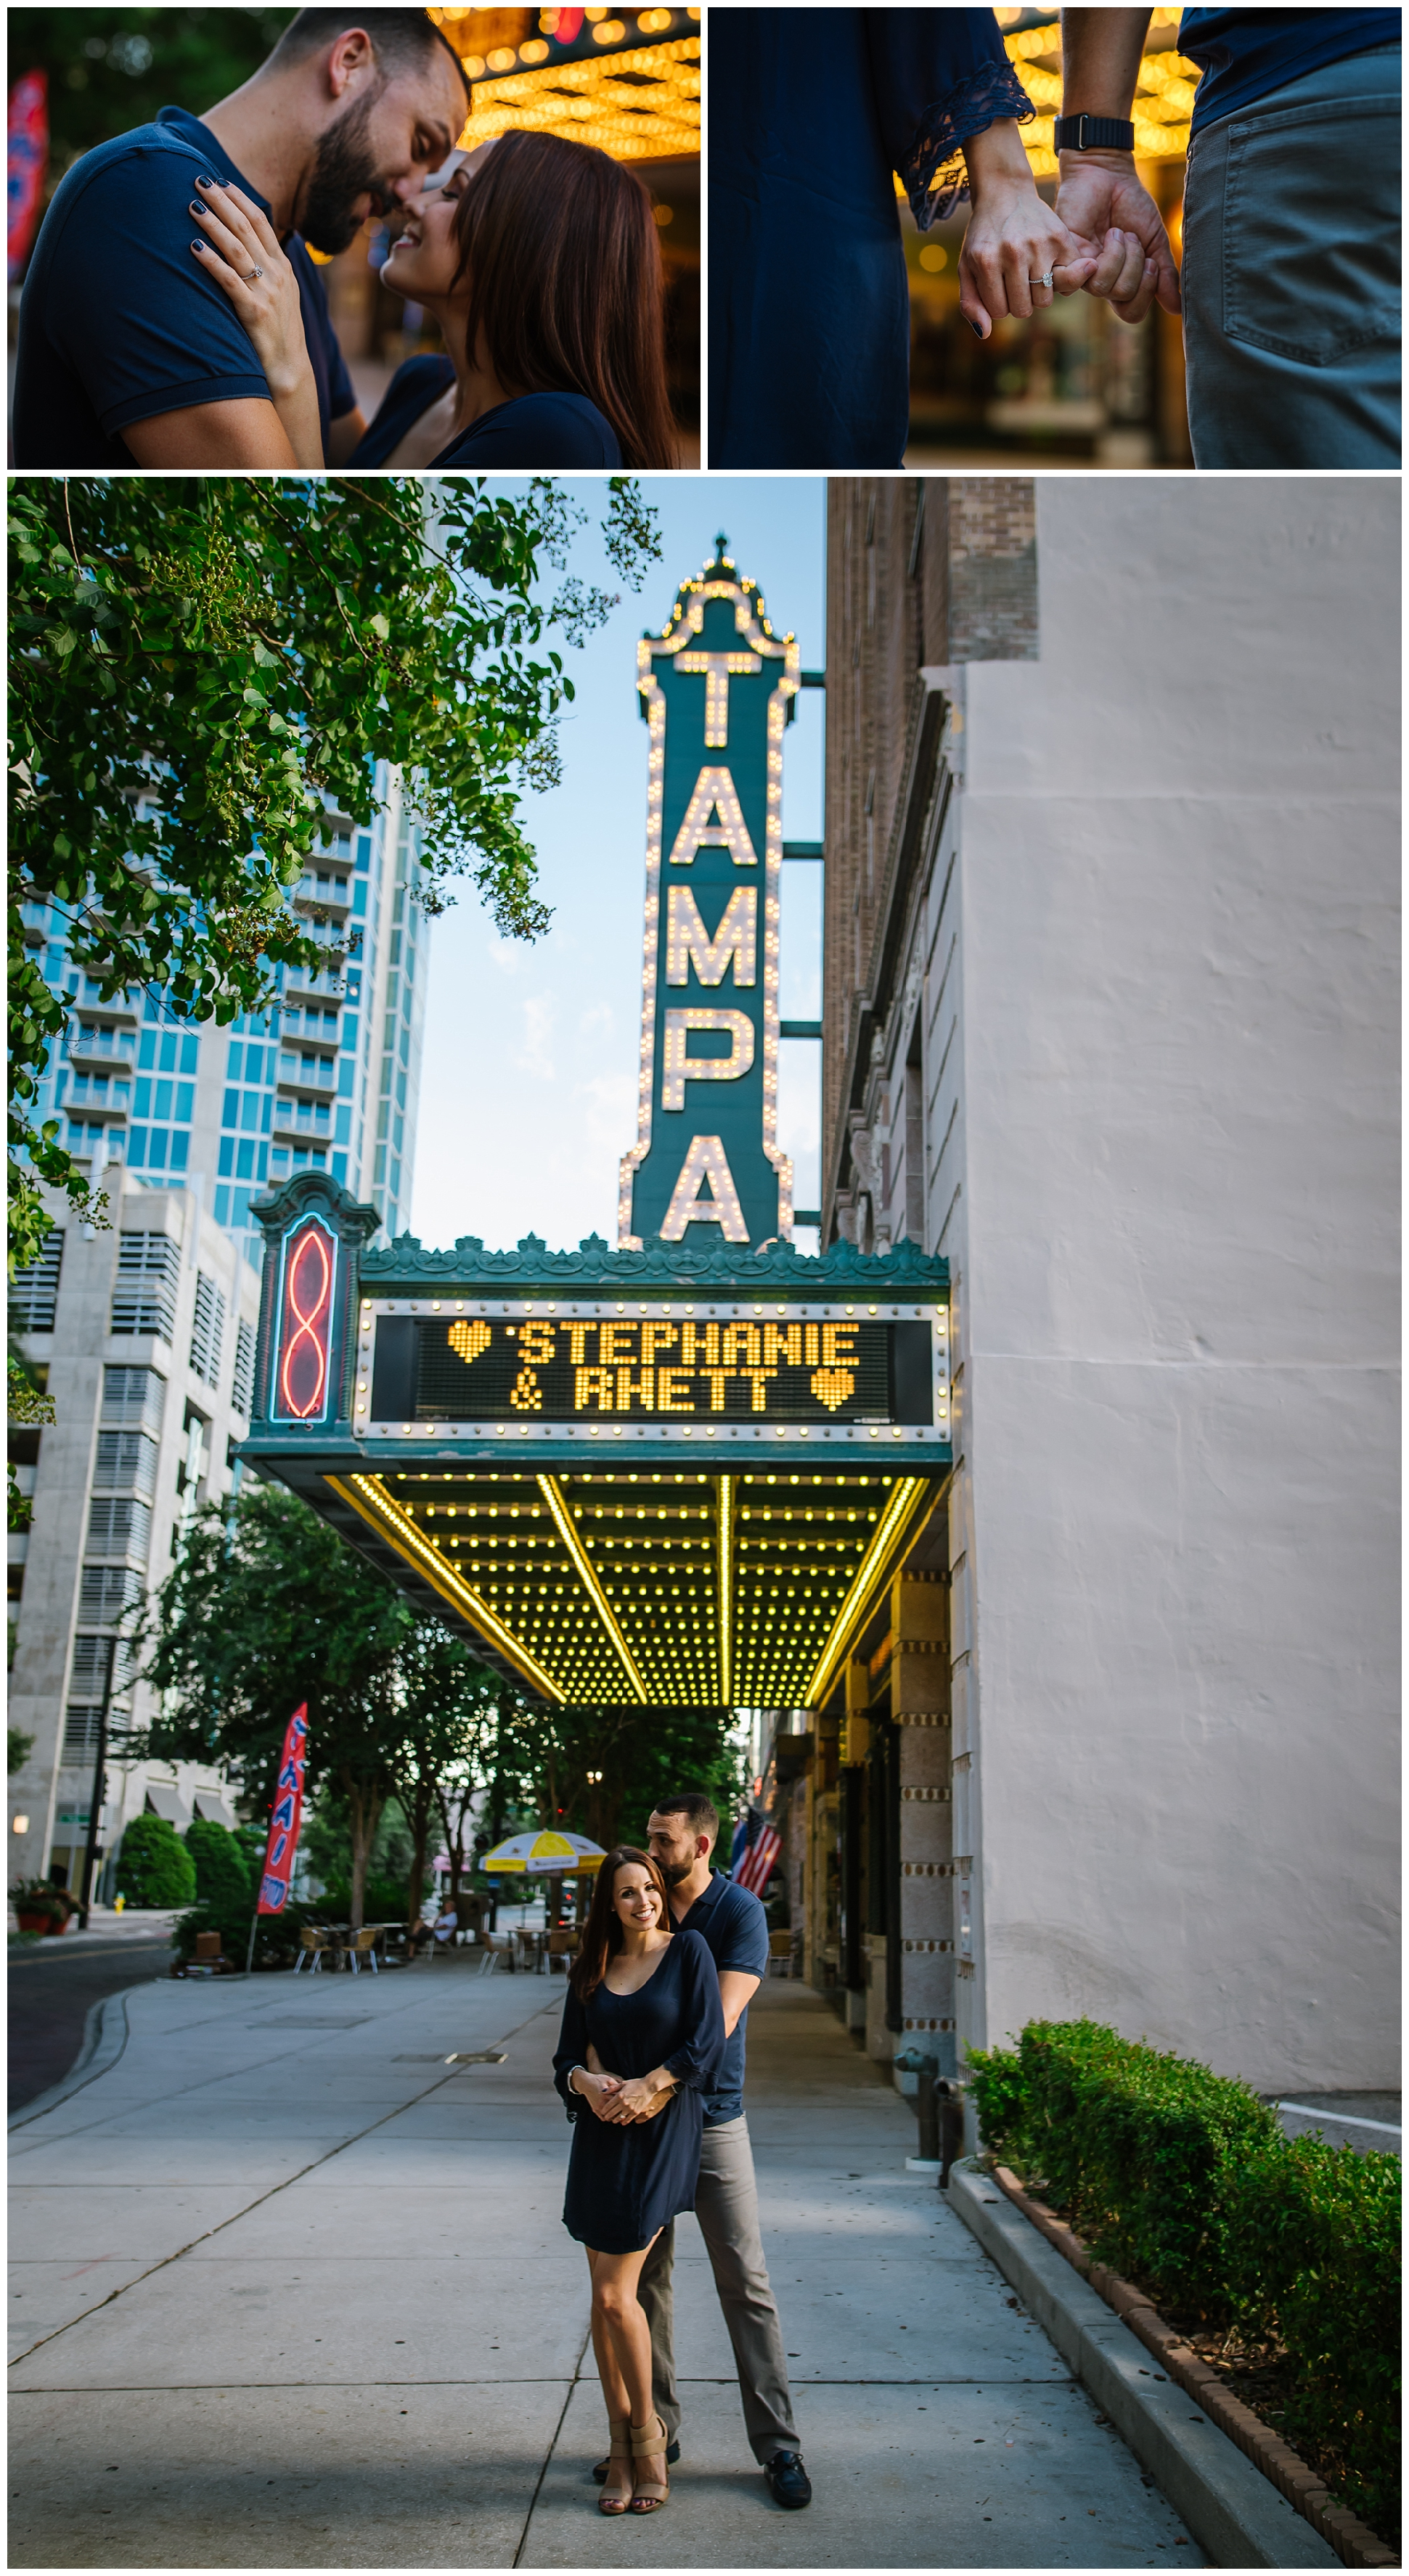 tampa-theater-romantic-surprise-proposal-red-roses-photographer_0017.jpg